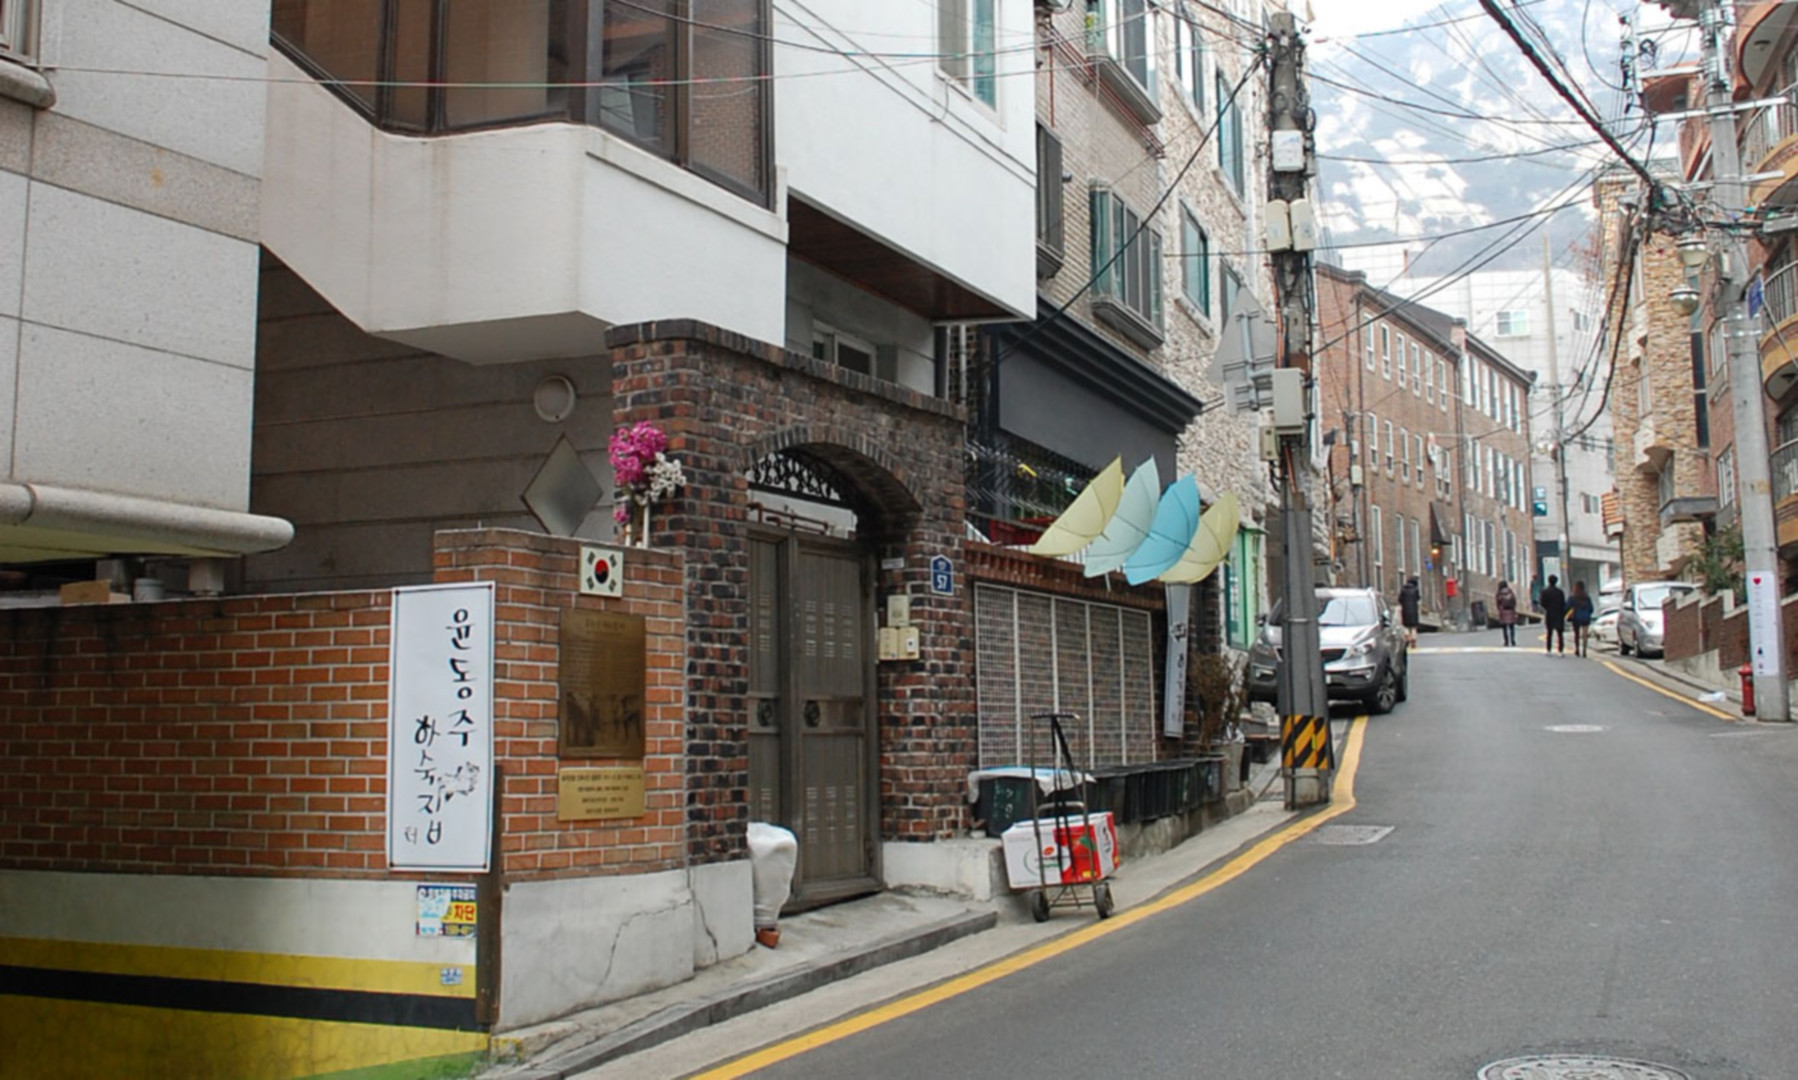 Yun Dong-ju's Boarding House from the narrow side street out front looking at the entrance